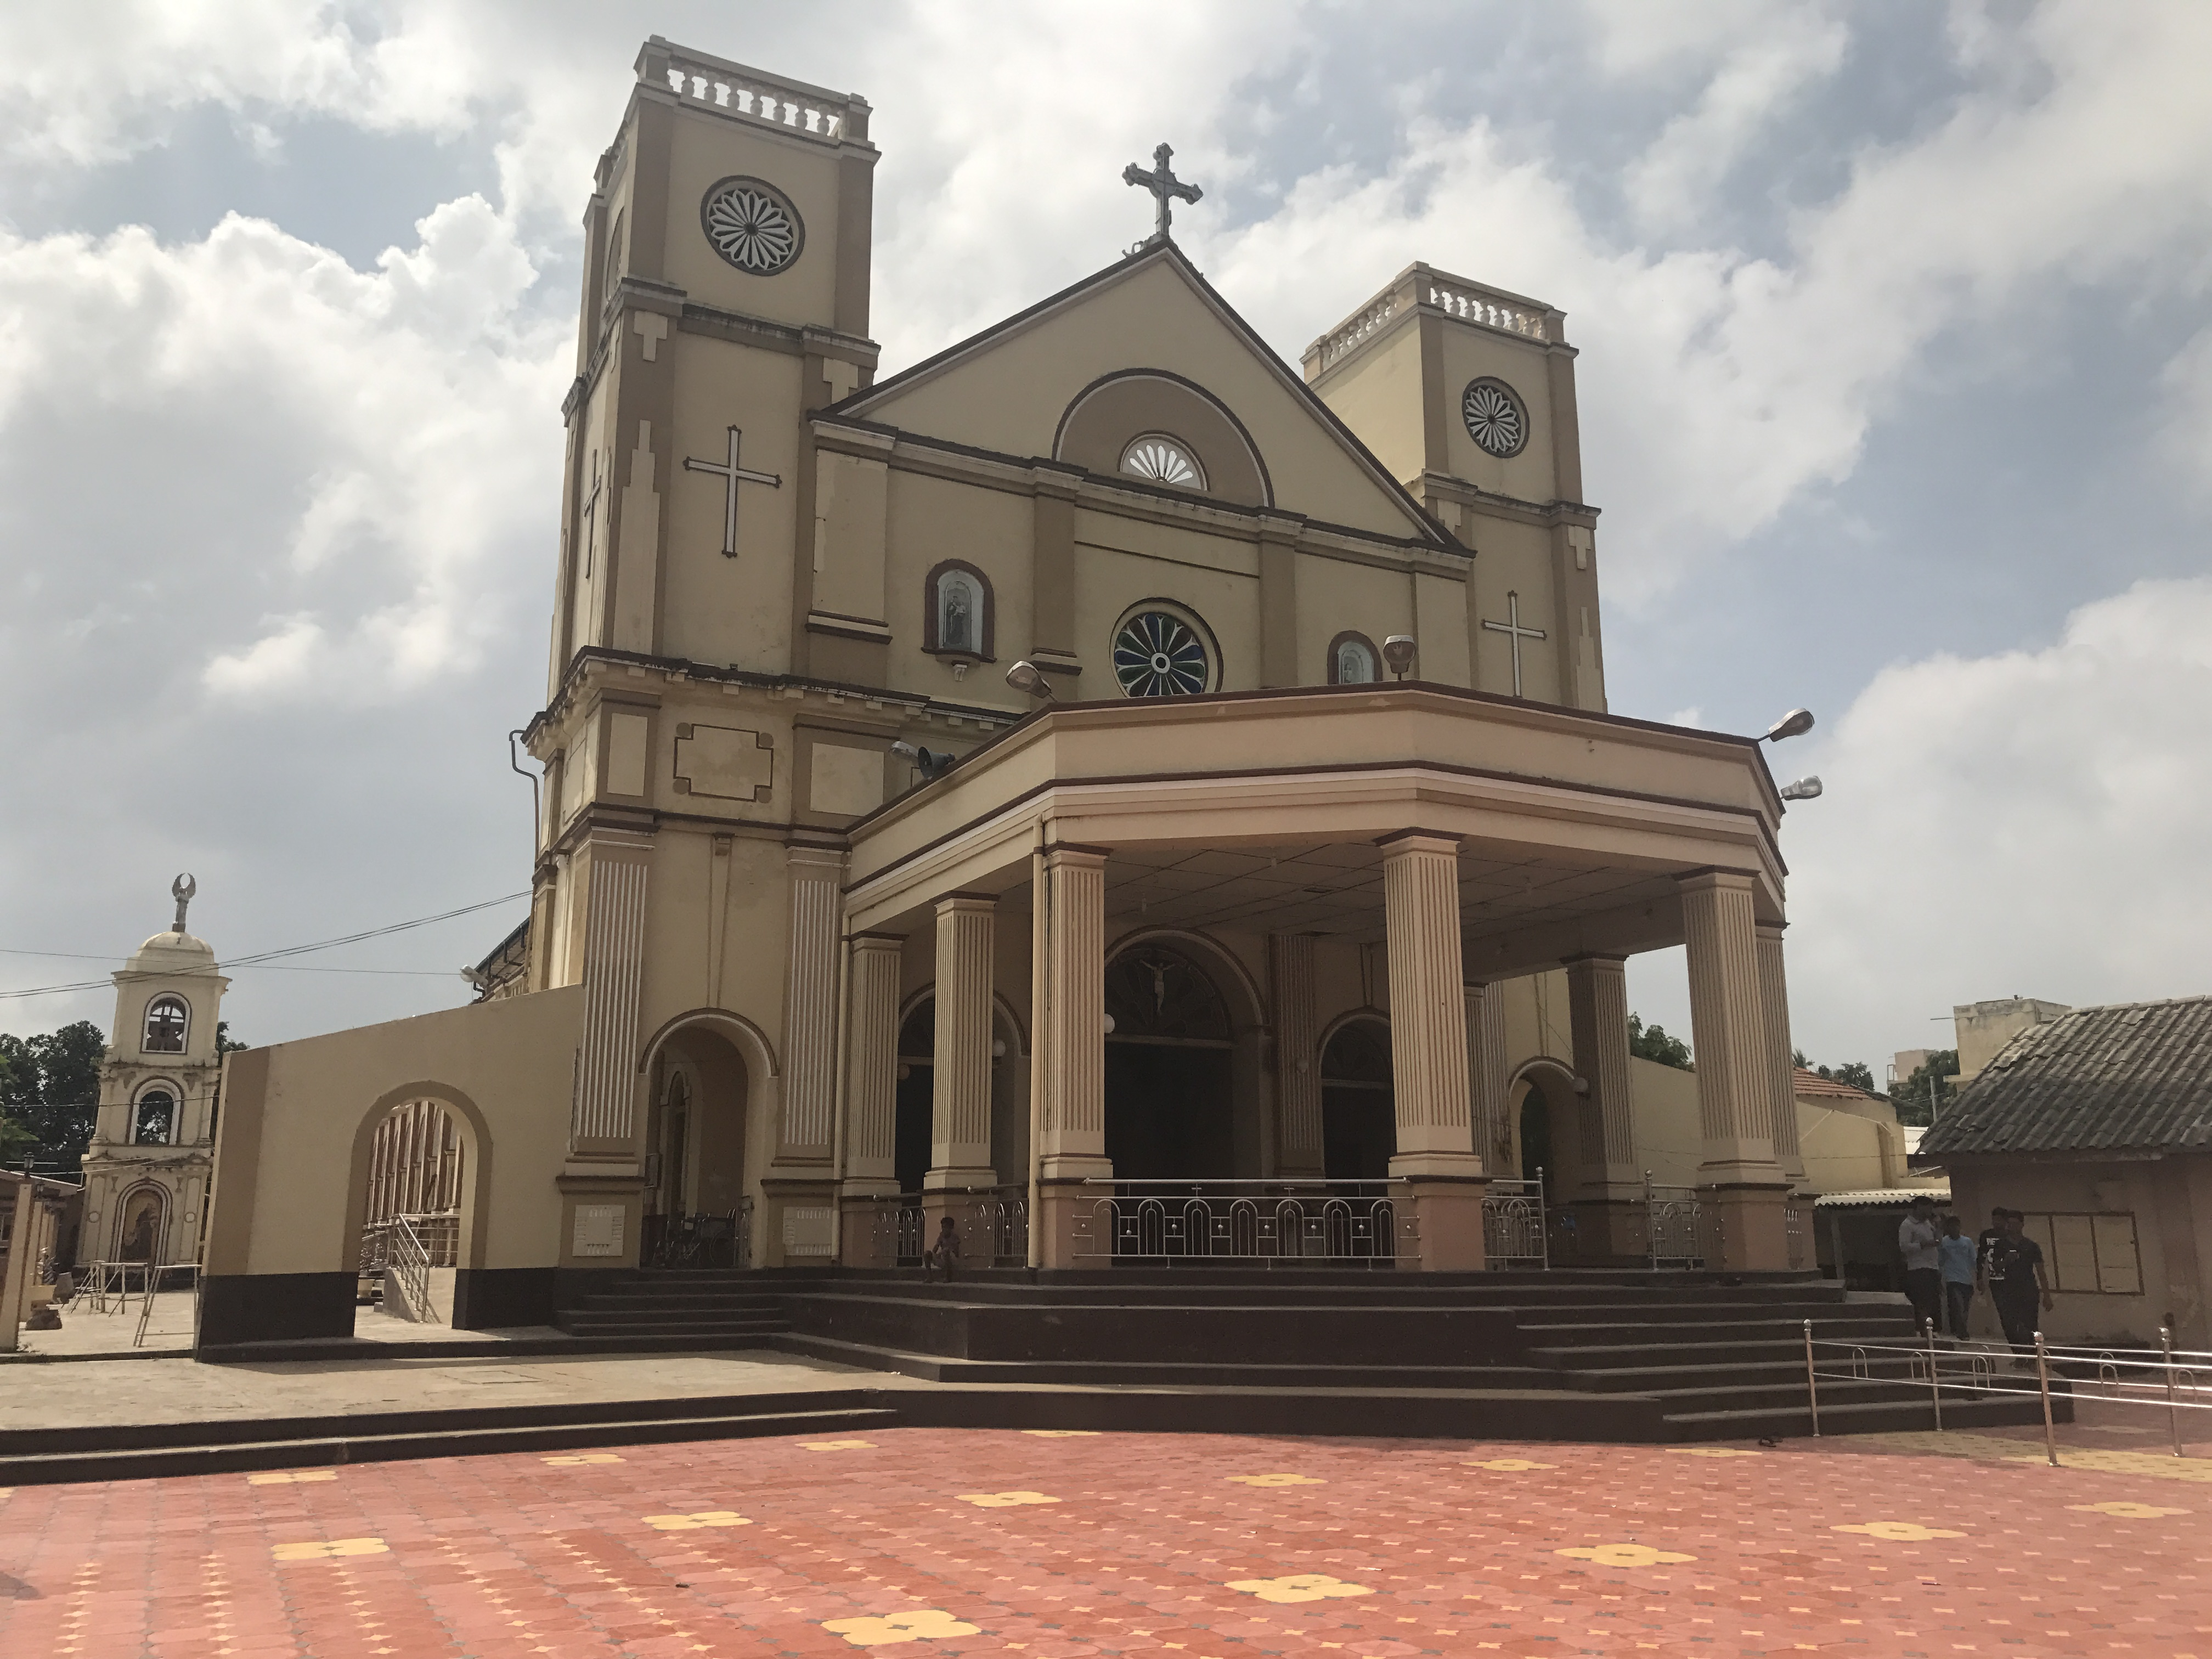 St. Mary's Cathedral in Jaffna